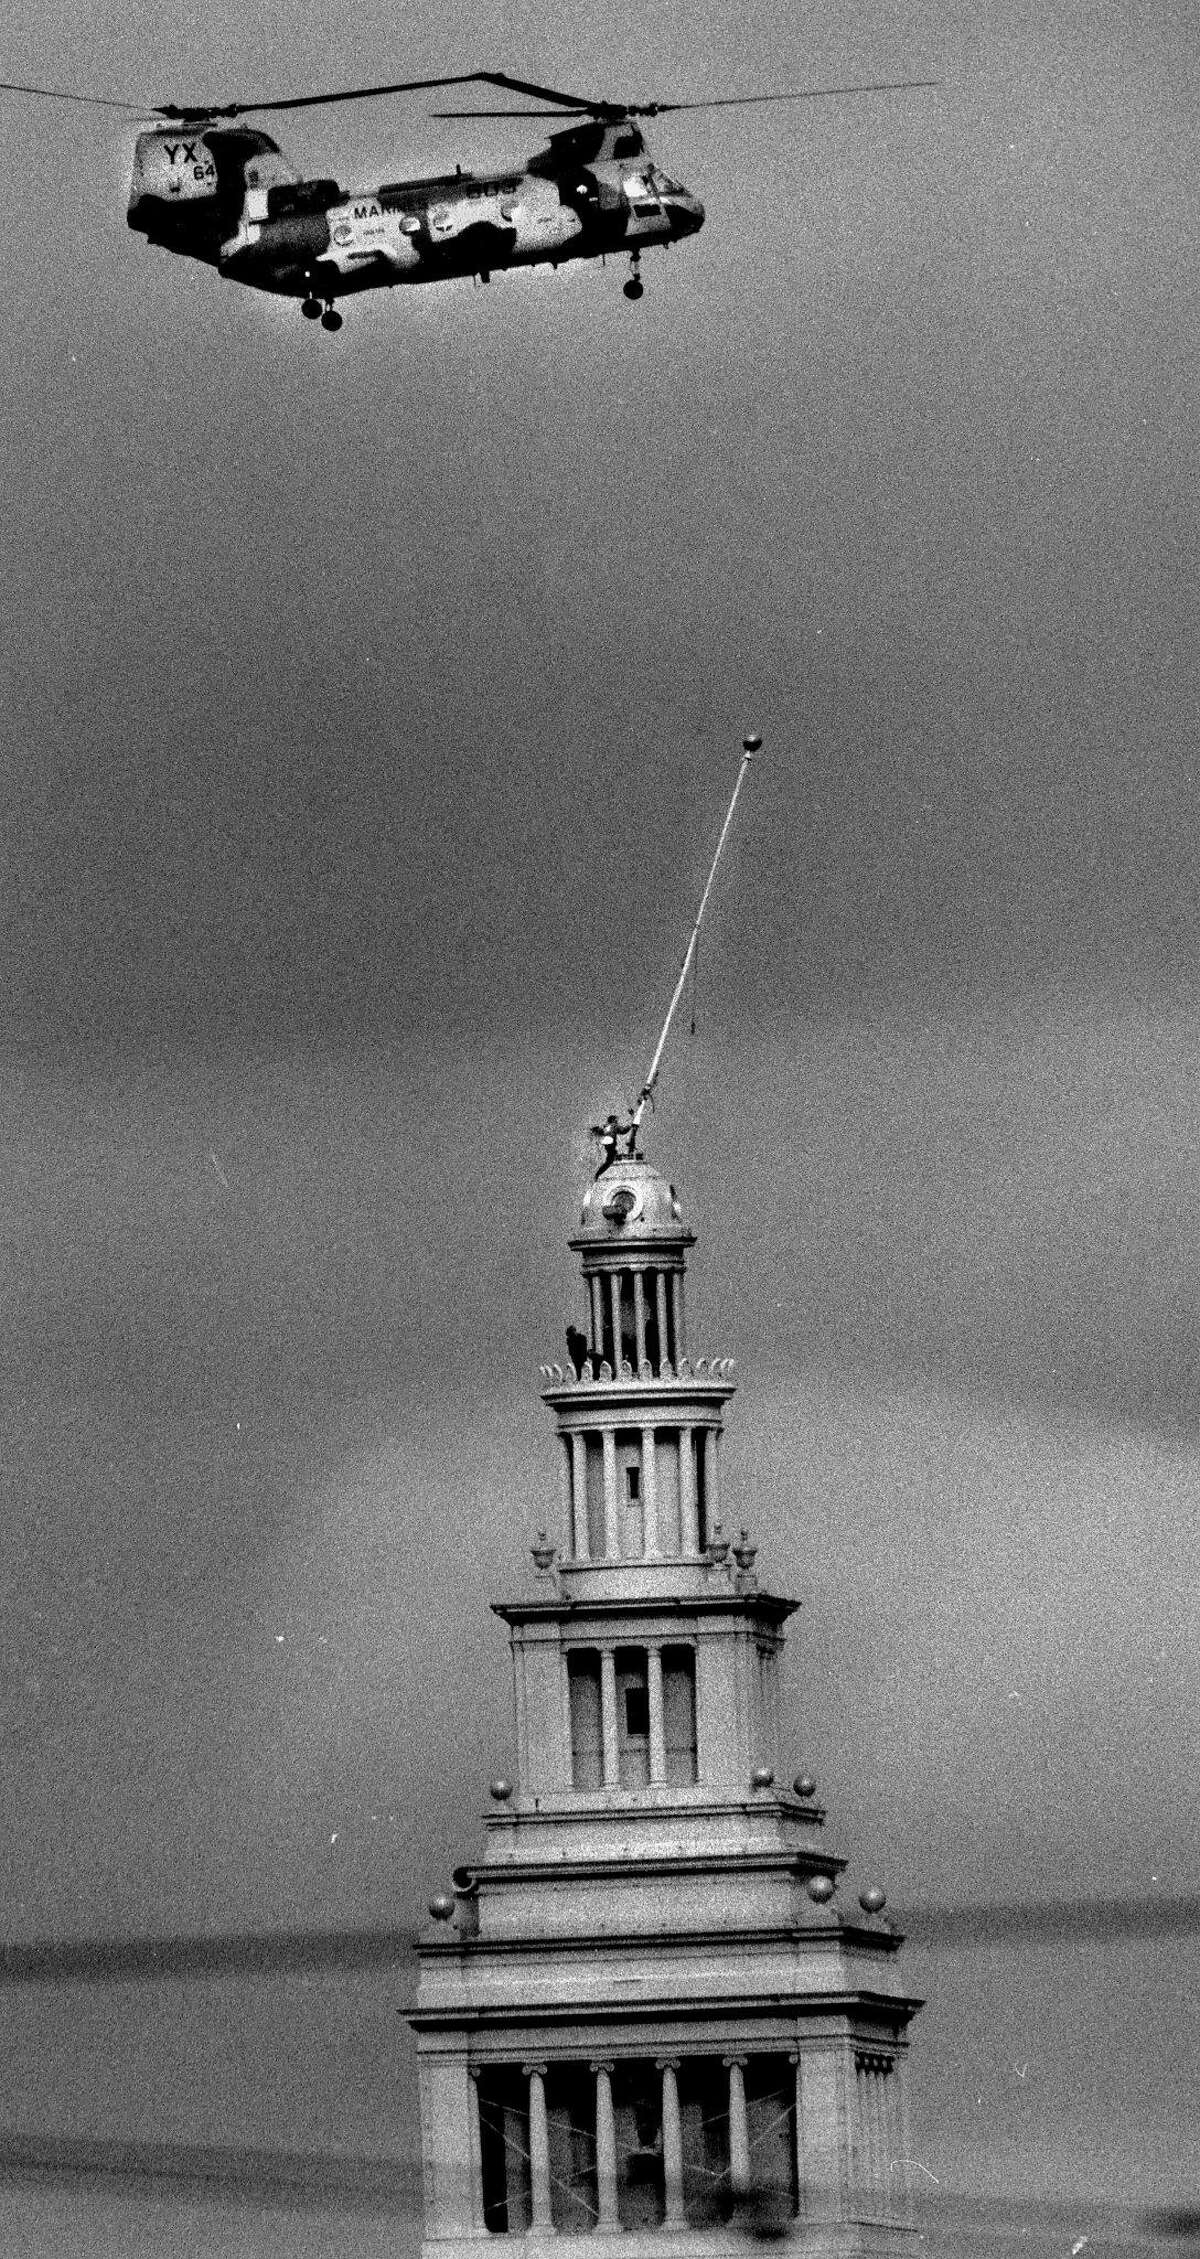 Reparing the Ferry Building flag pole, damaged by the Loma Prieta earthquake No run date Photo shot 10/1989